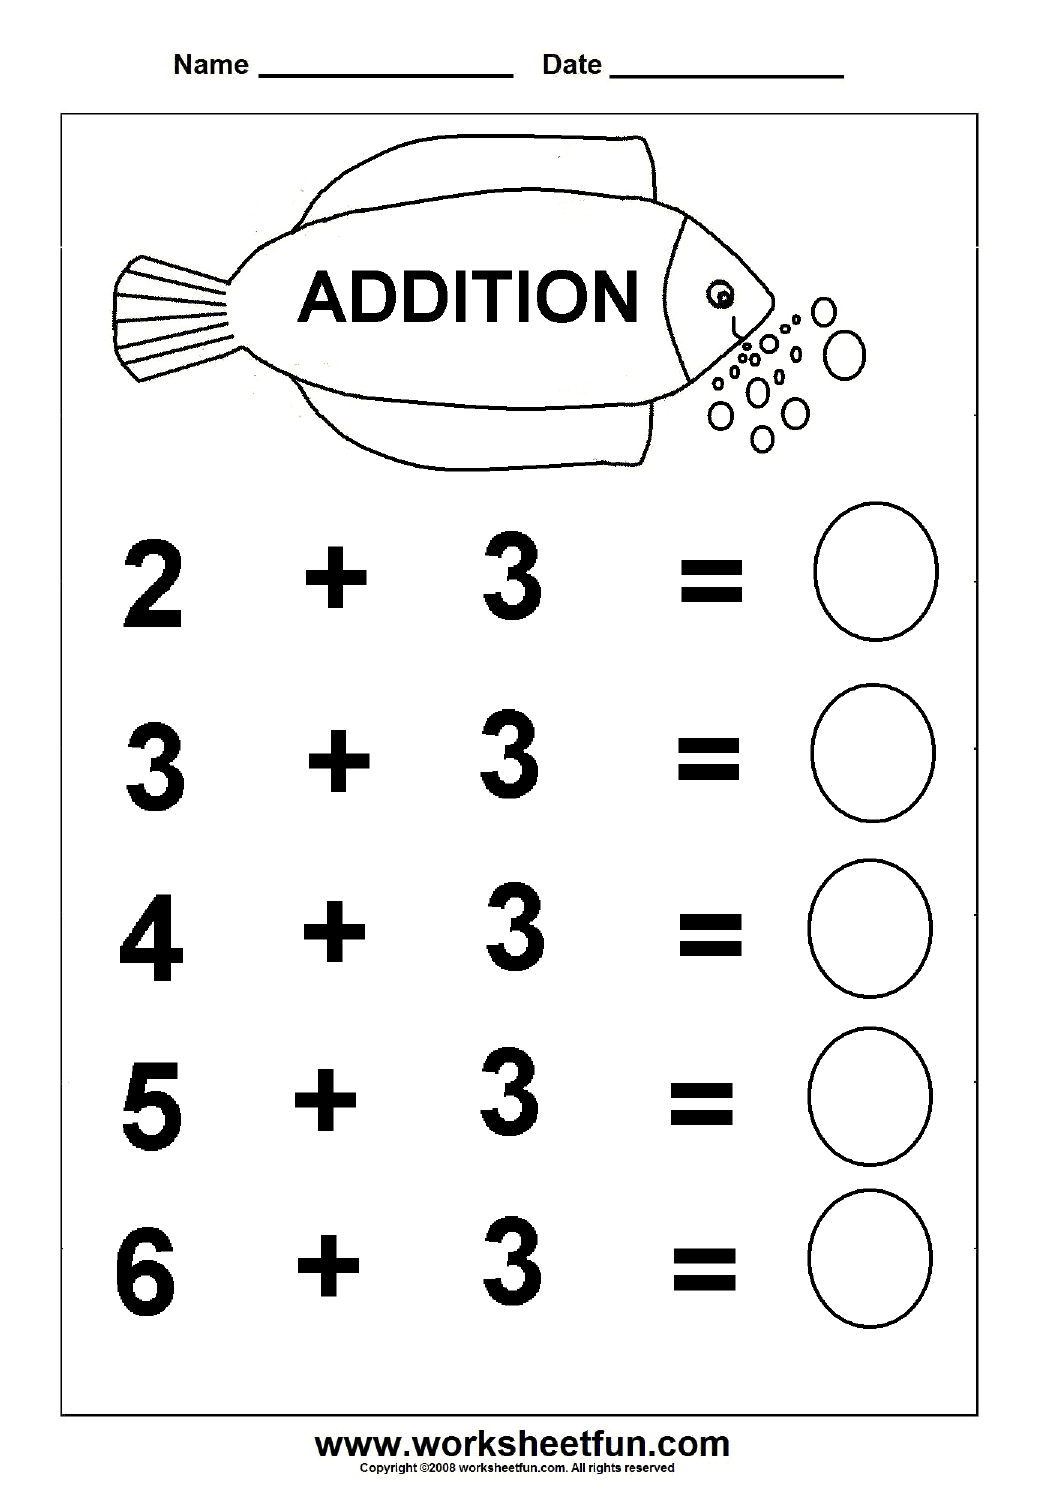 Beginner Addition – 6 Kindergarten Addition Worksheets / Free - Free Printable Math Addition Worksheets For Kindergarten